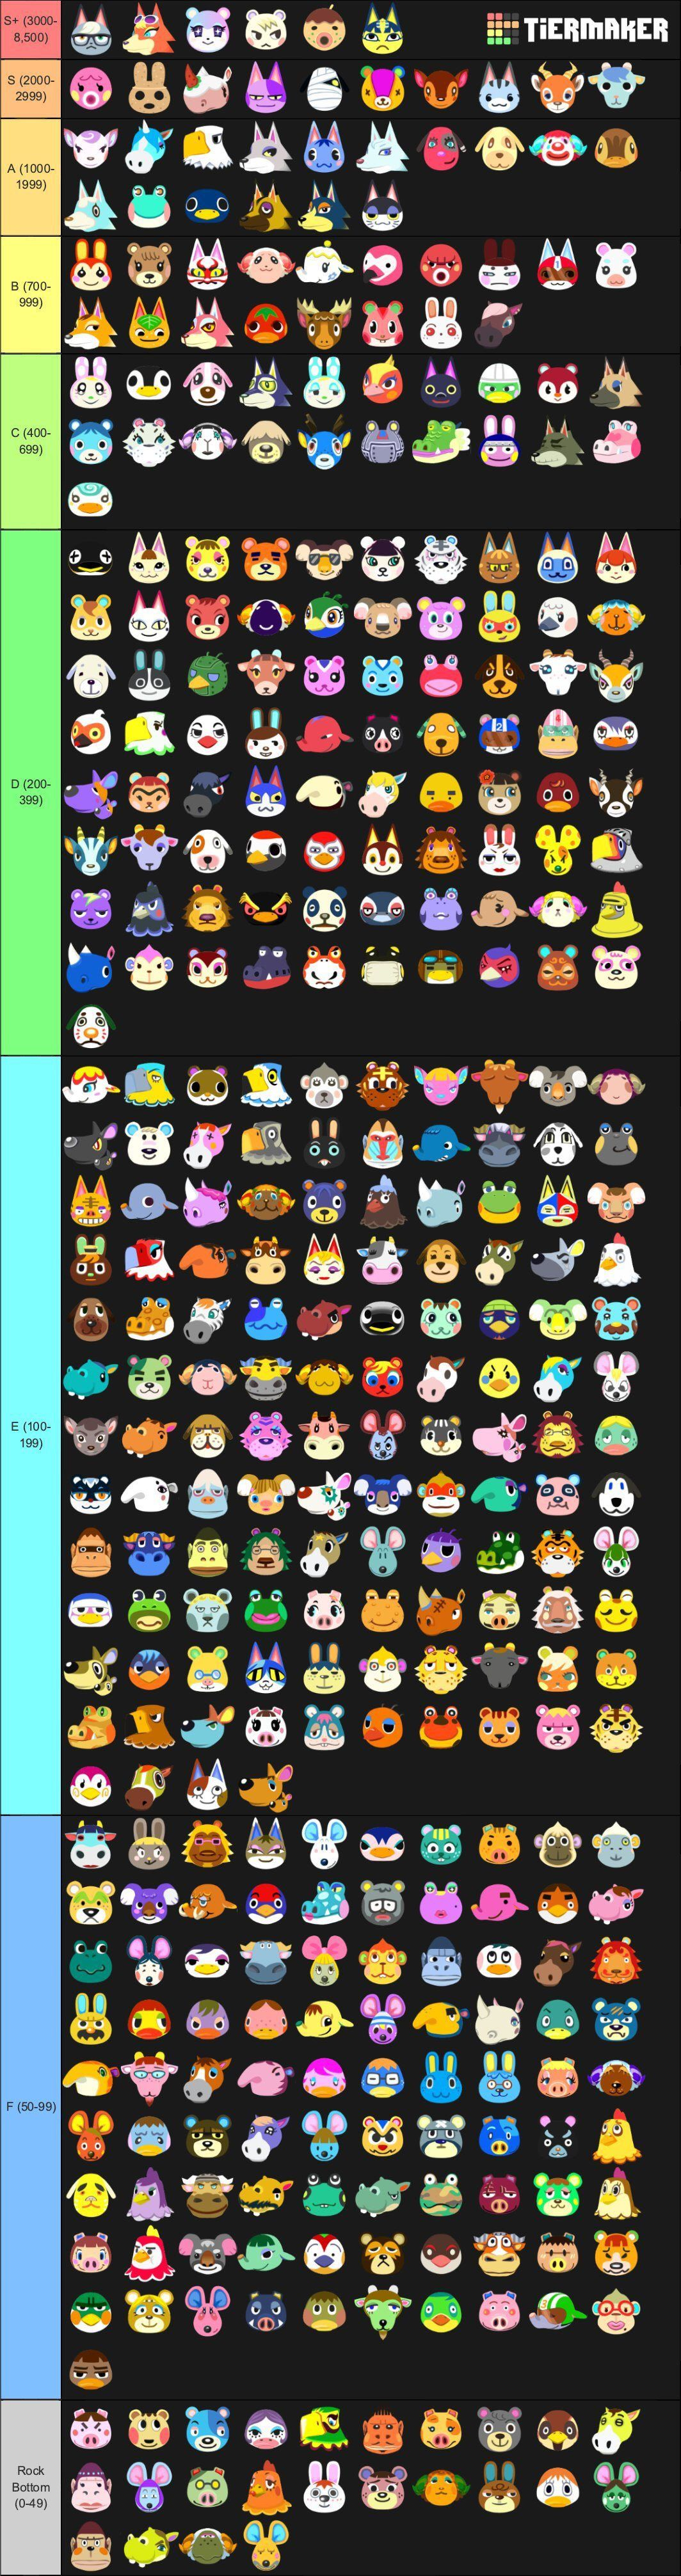 Most Wanted Animal Crossing Villager Tier List Animal Crossing Villagers Animal Crossing Funny Animal Crossing